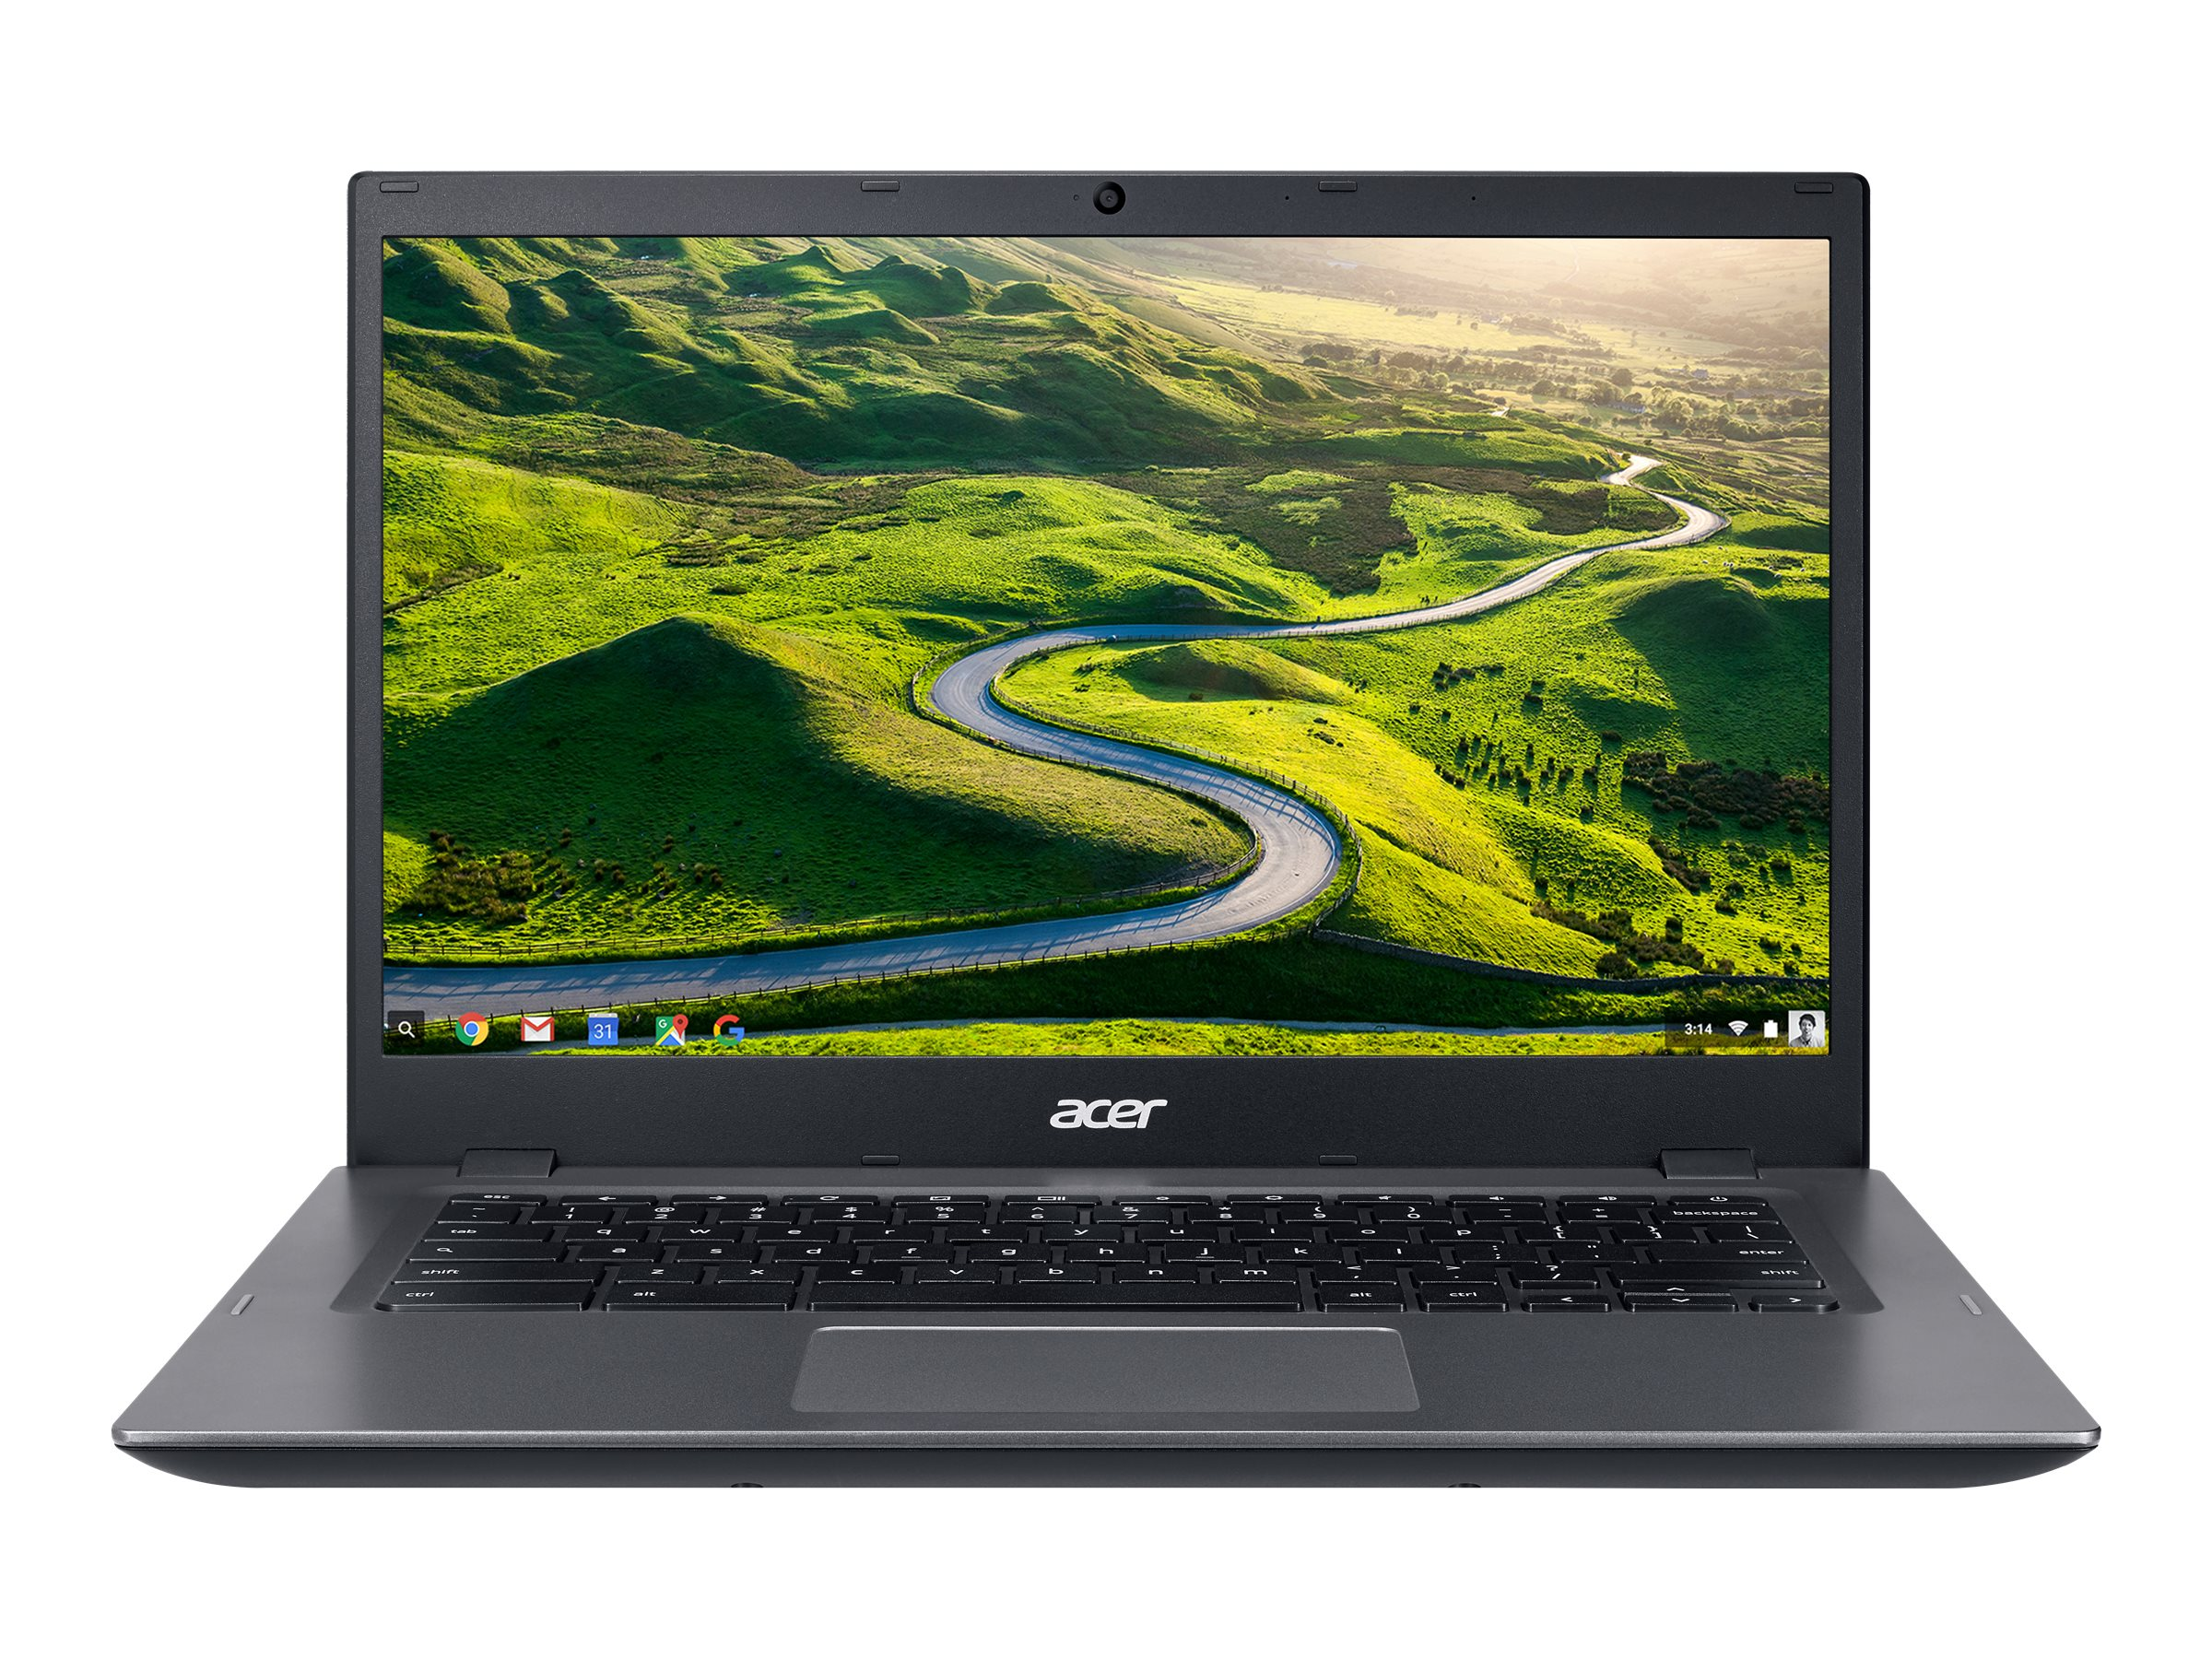 Acer Chromebook 14 CP5-471-C0EX 1.6GHz Celeron 14in display, NX.GDDAA.001